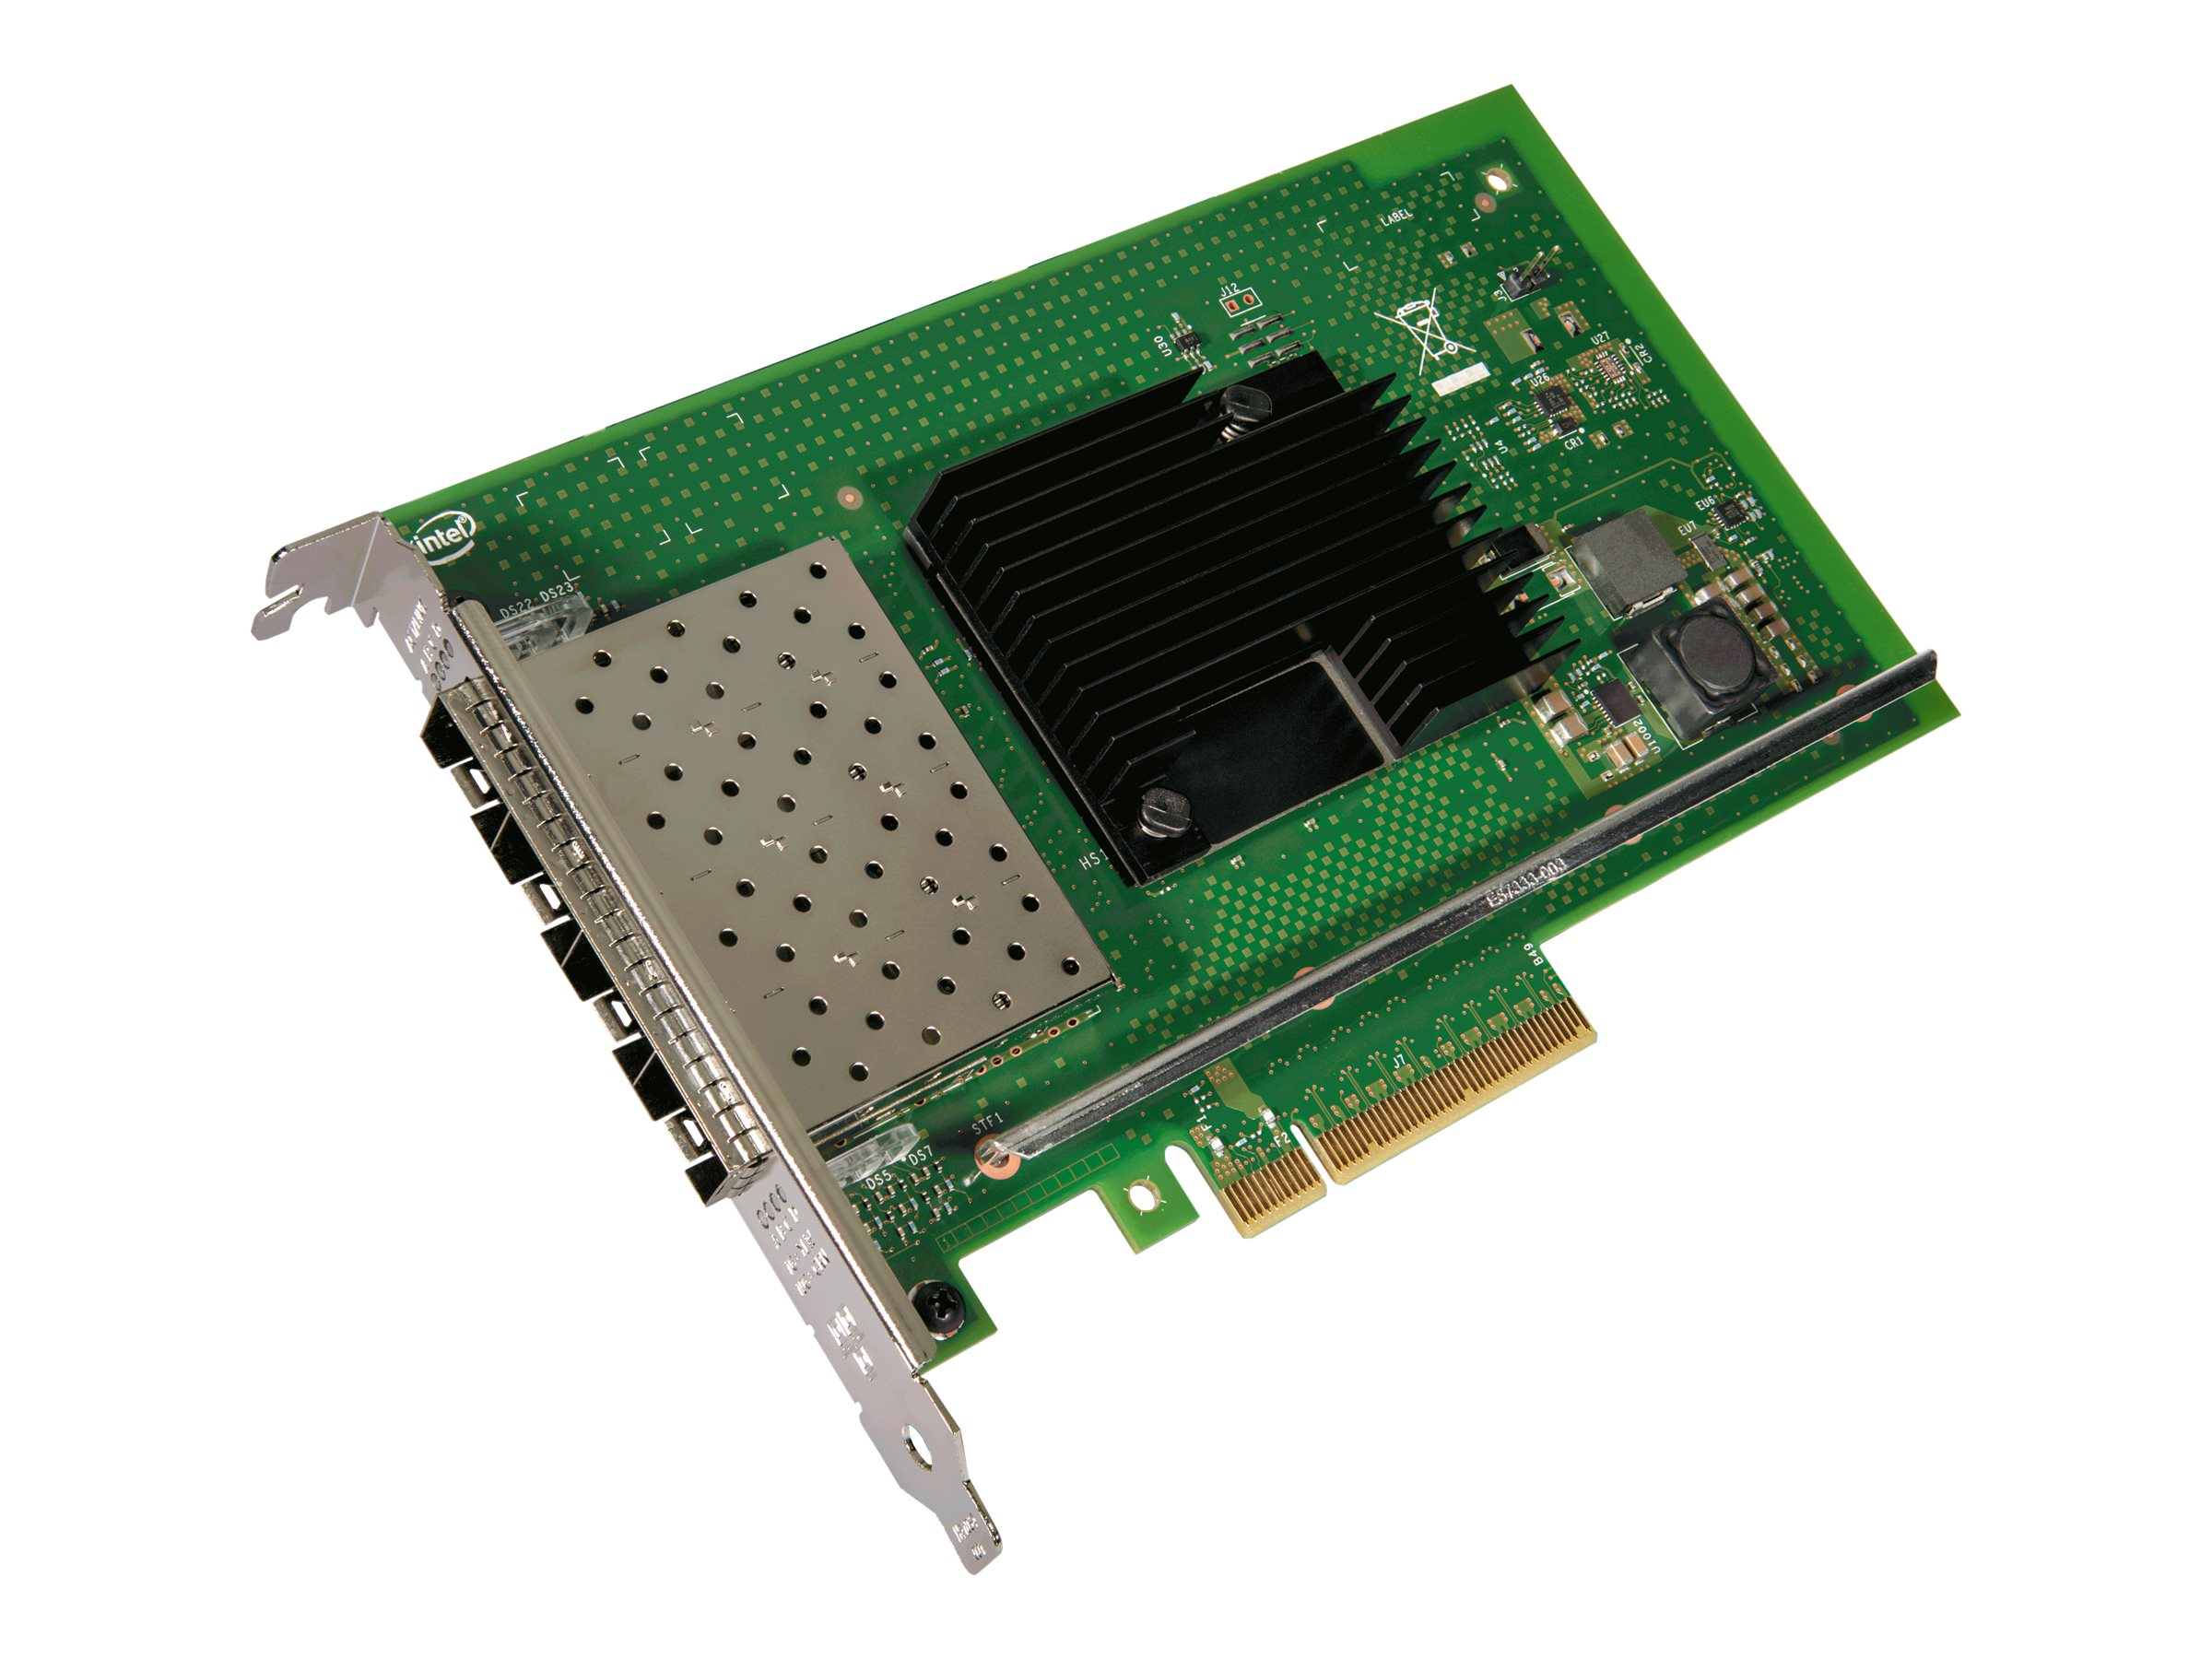 Intel 10Gigabit Ethernet Card for Server - PCI Express 3.0 x8 - 4 Port(s) - Optical Fiber - OEM